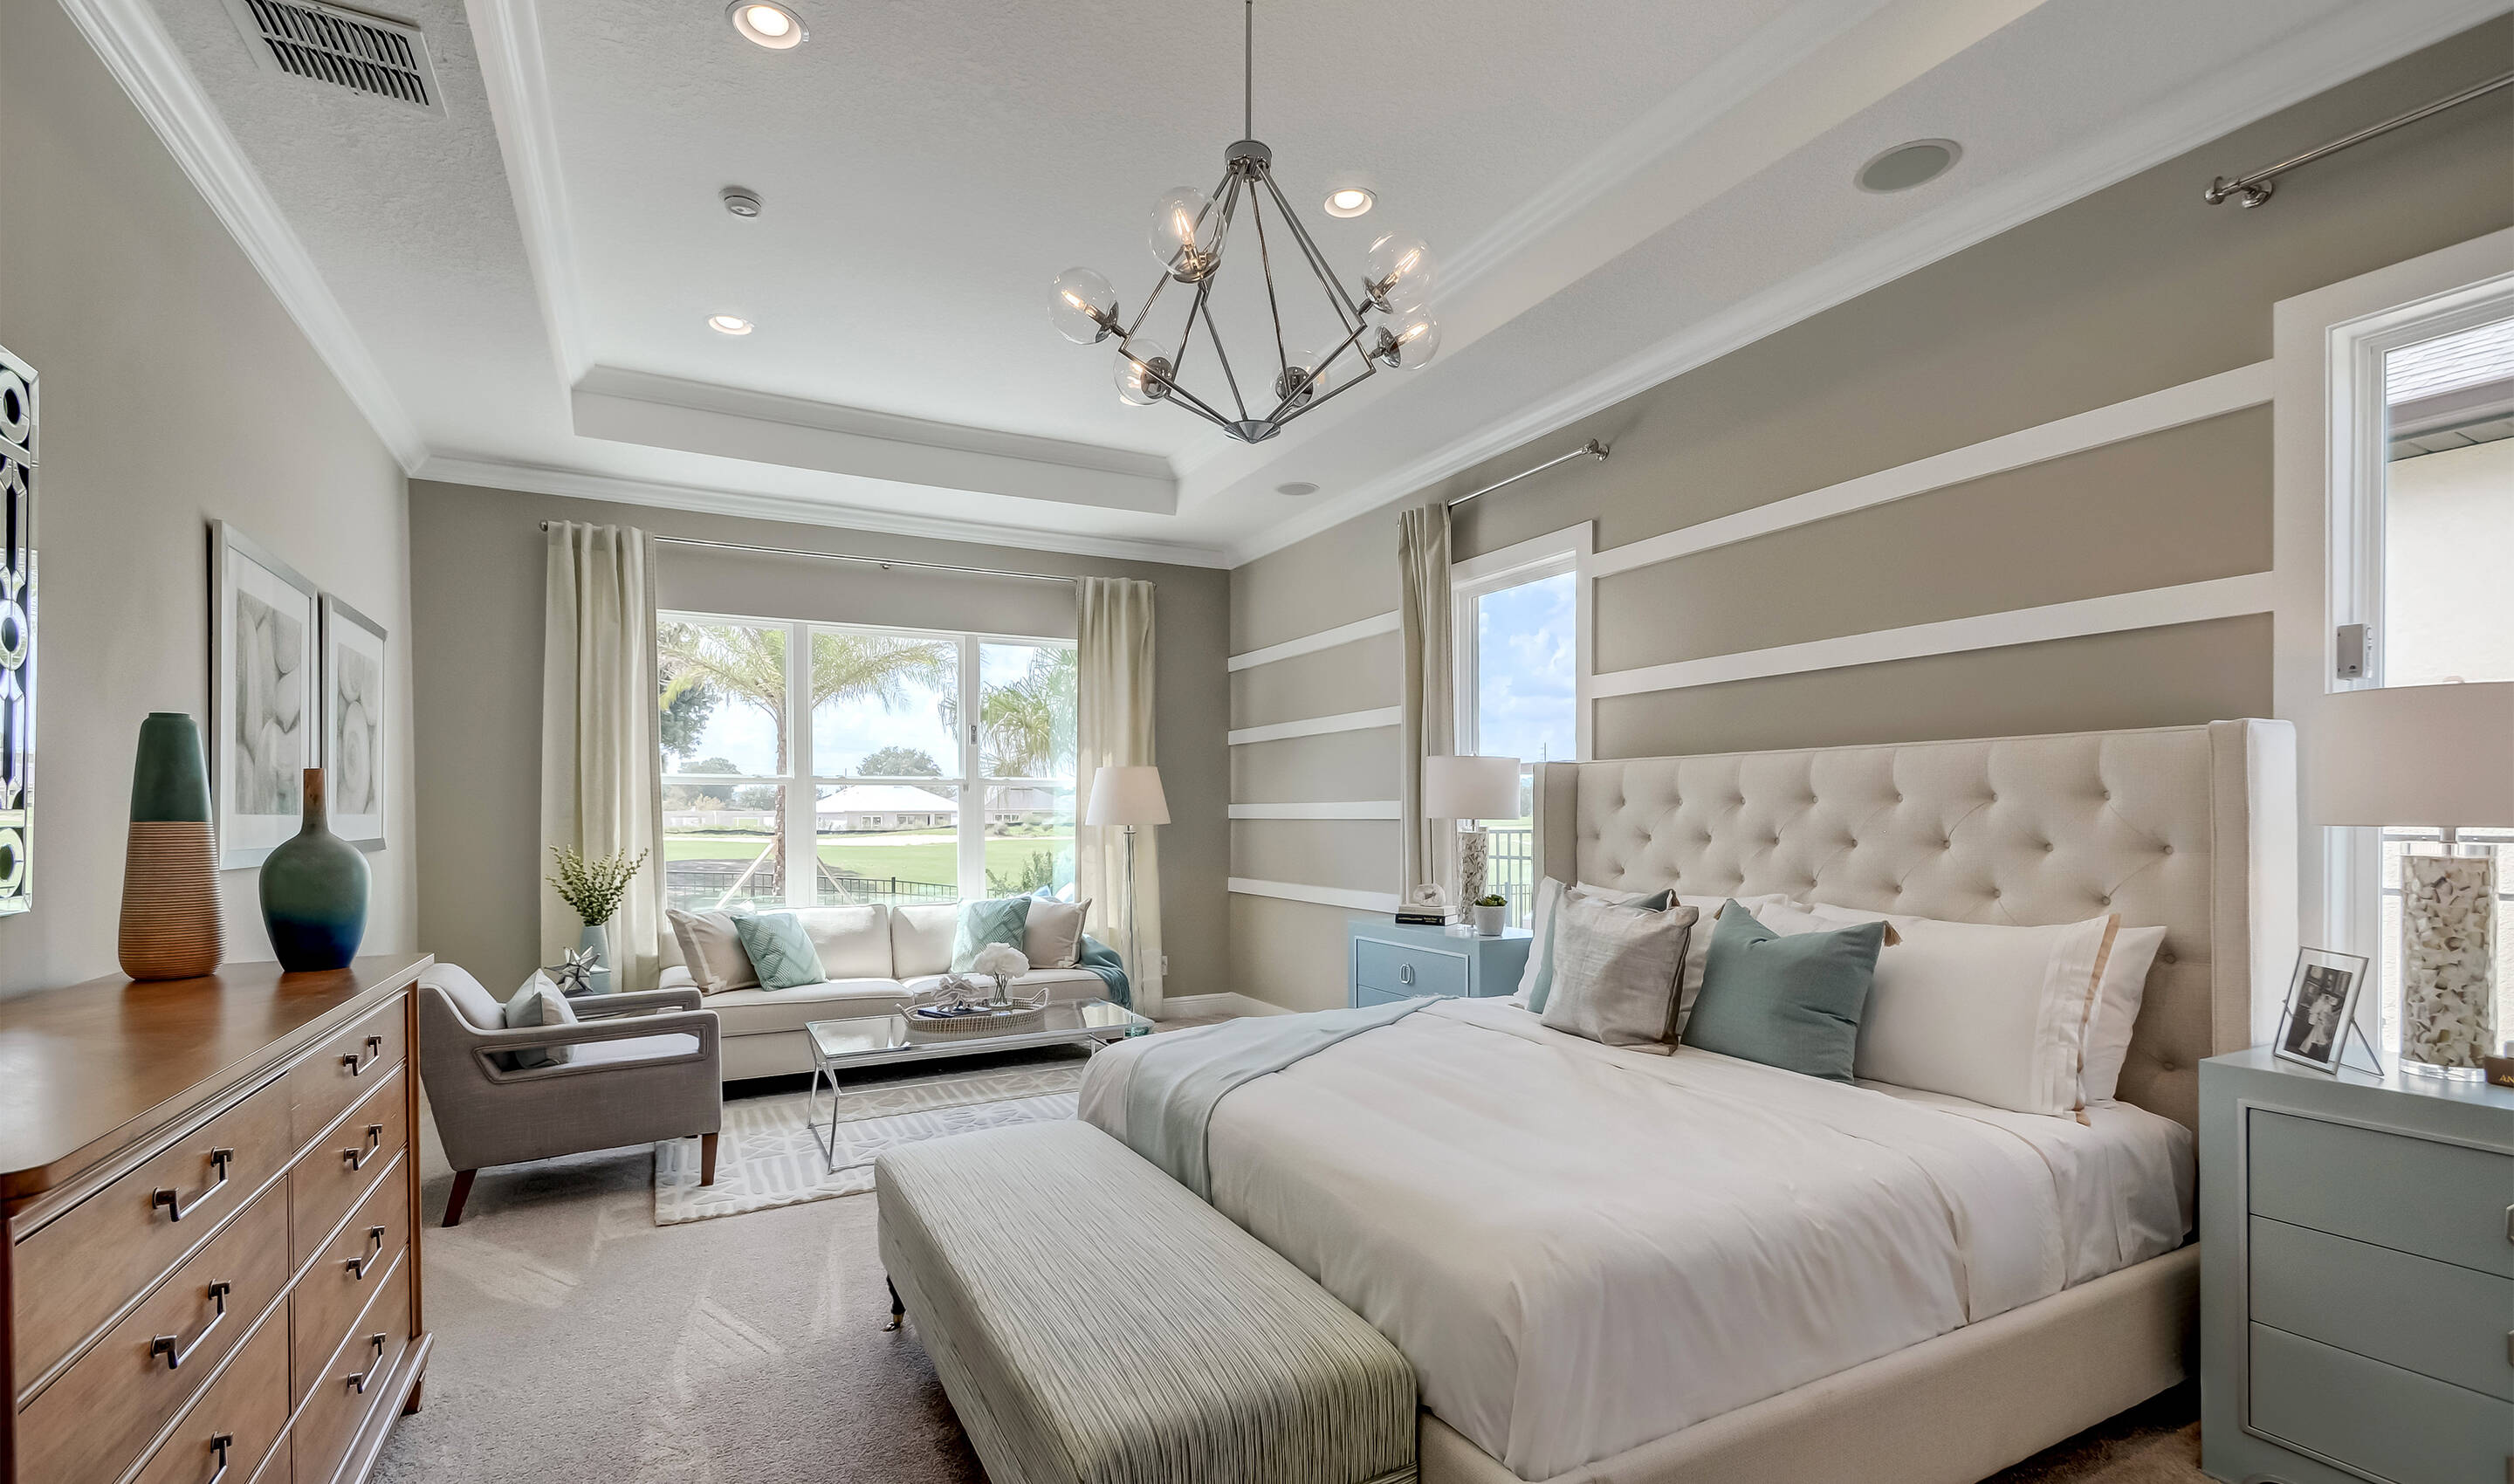 Four Seasons at Orlando Saint Lucia Owners Suite